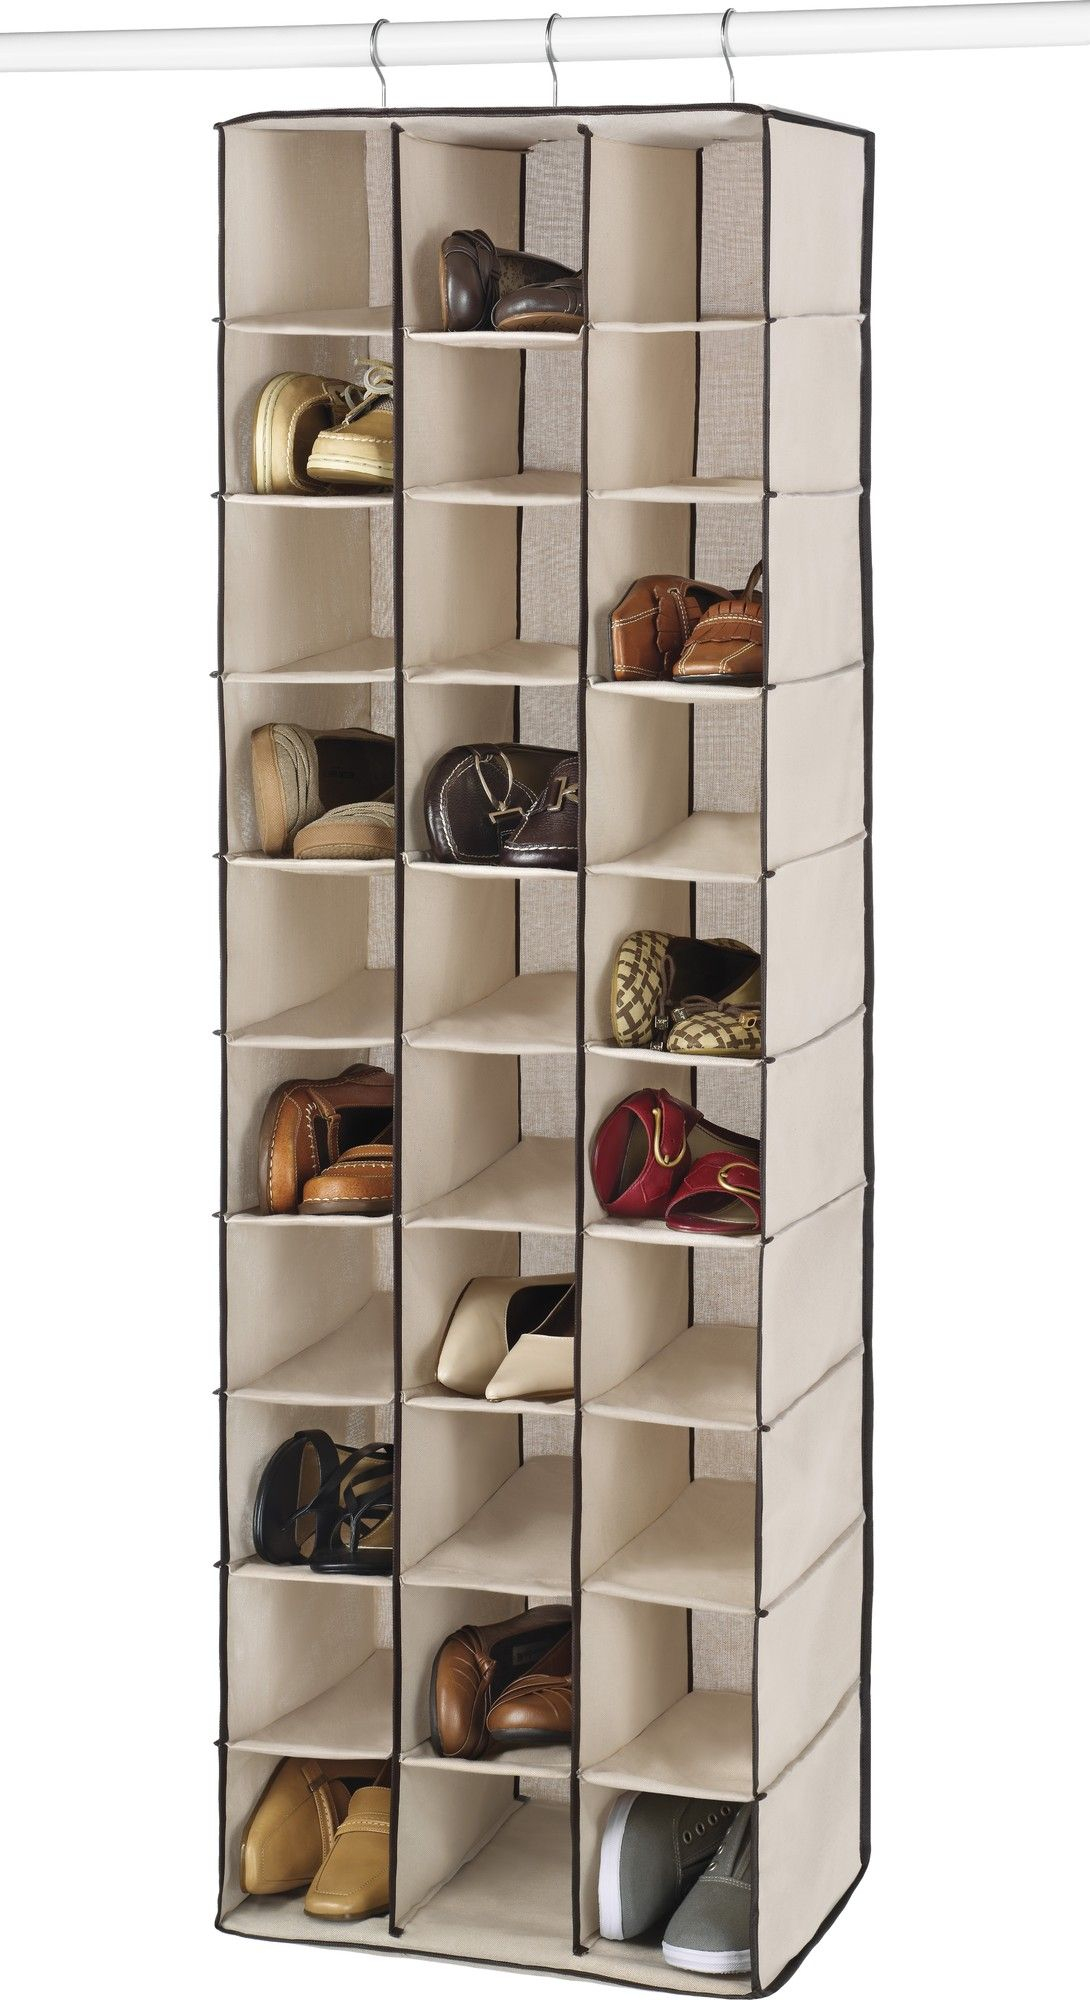 30 Pair Hanging Shoe Organizer In 2019 Apartment Shoe Shelves inside dimensions 1090 X 2000